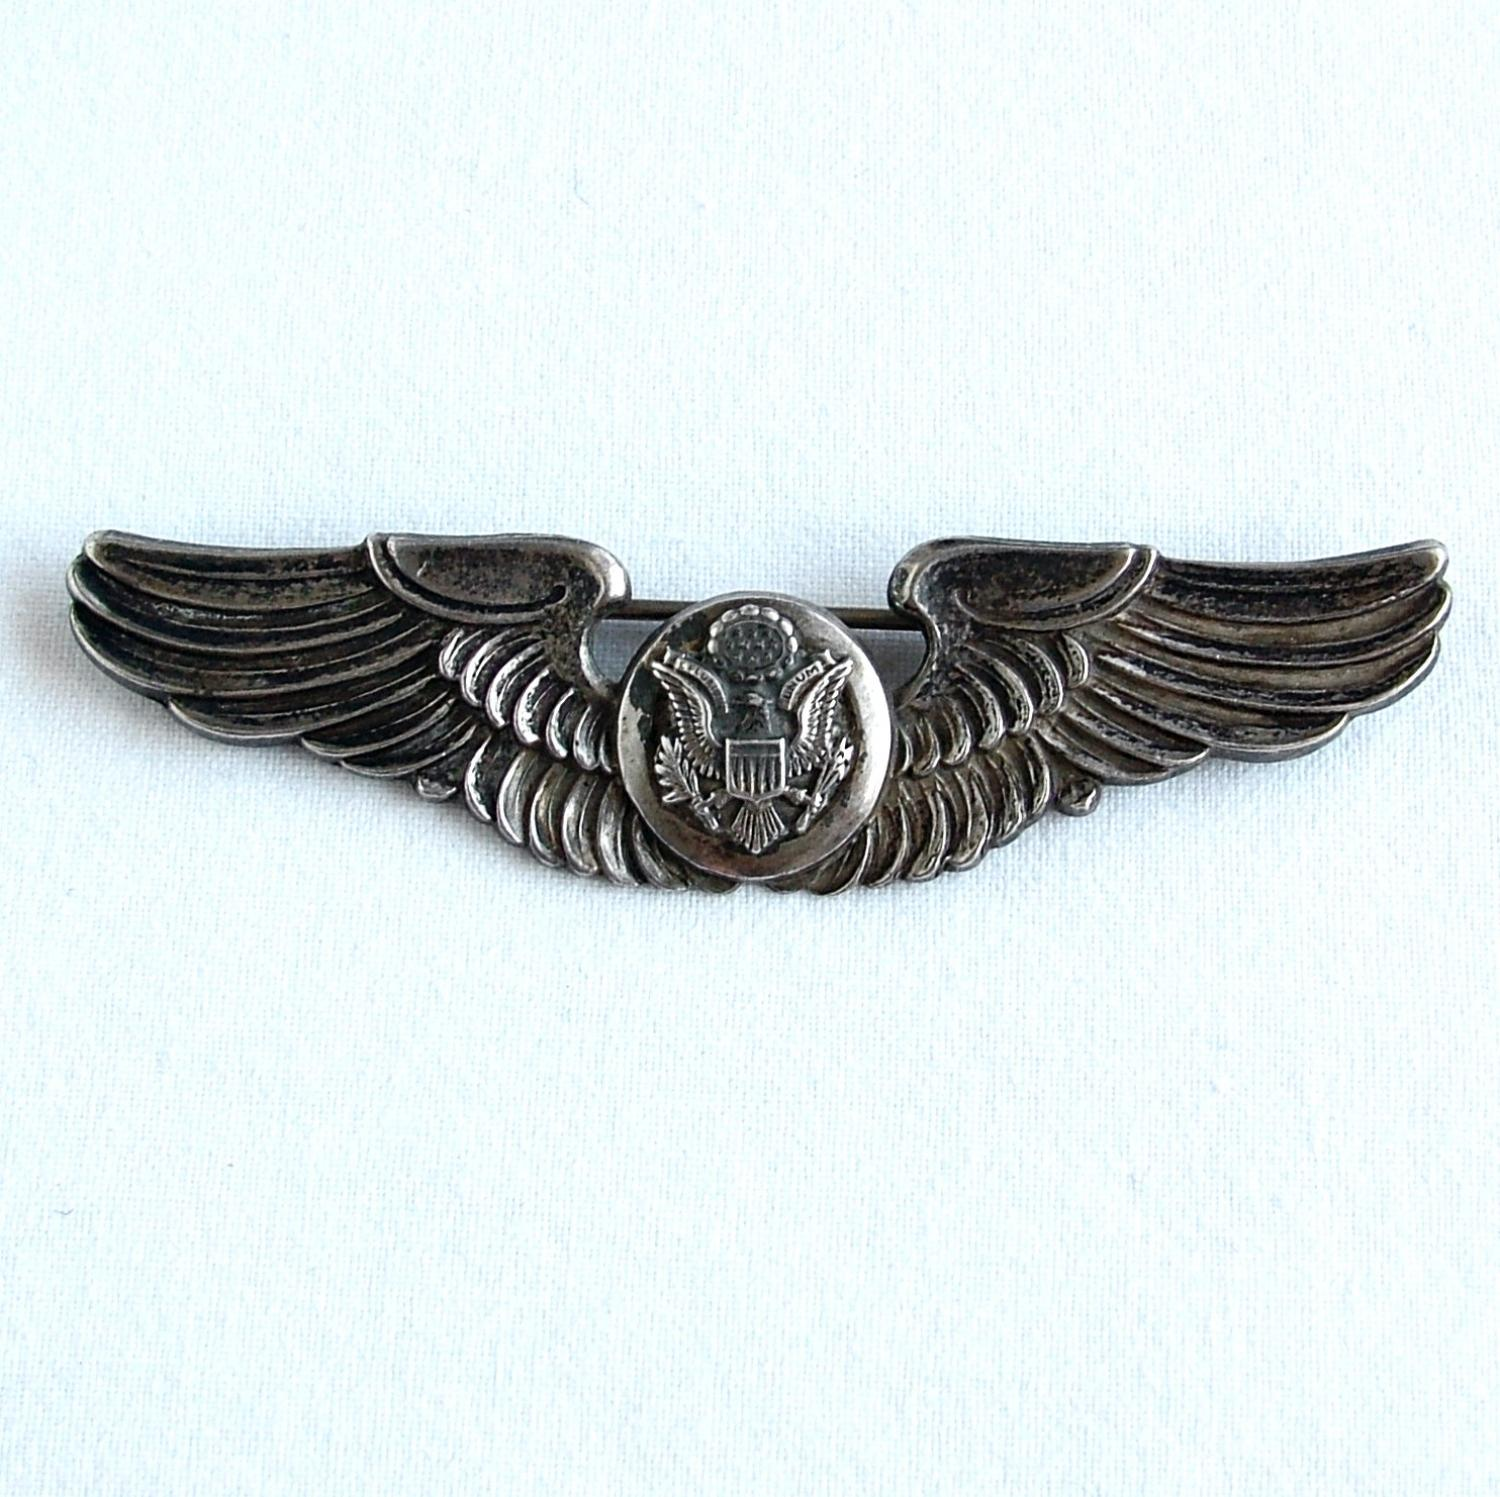 USAAF Amico Aircrew Wing